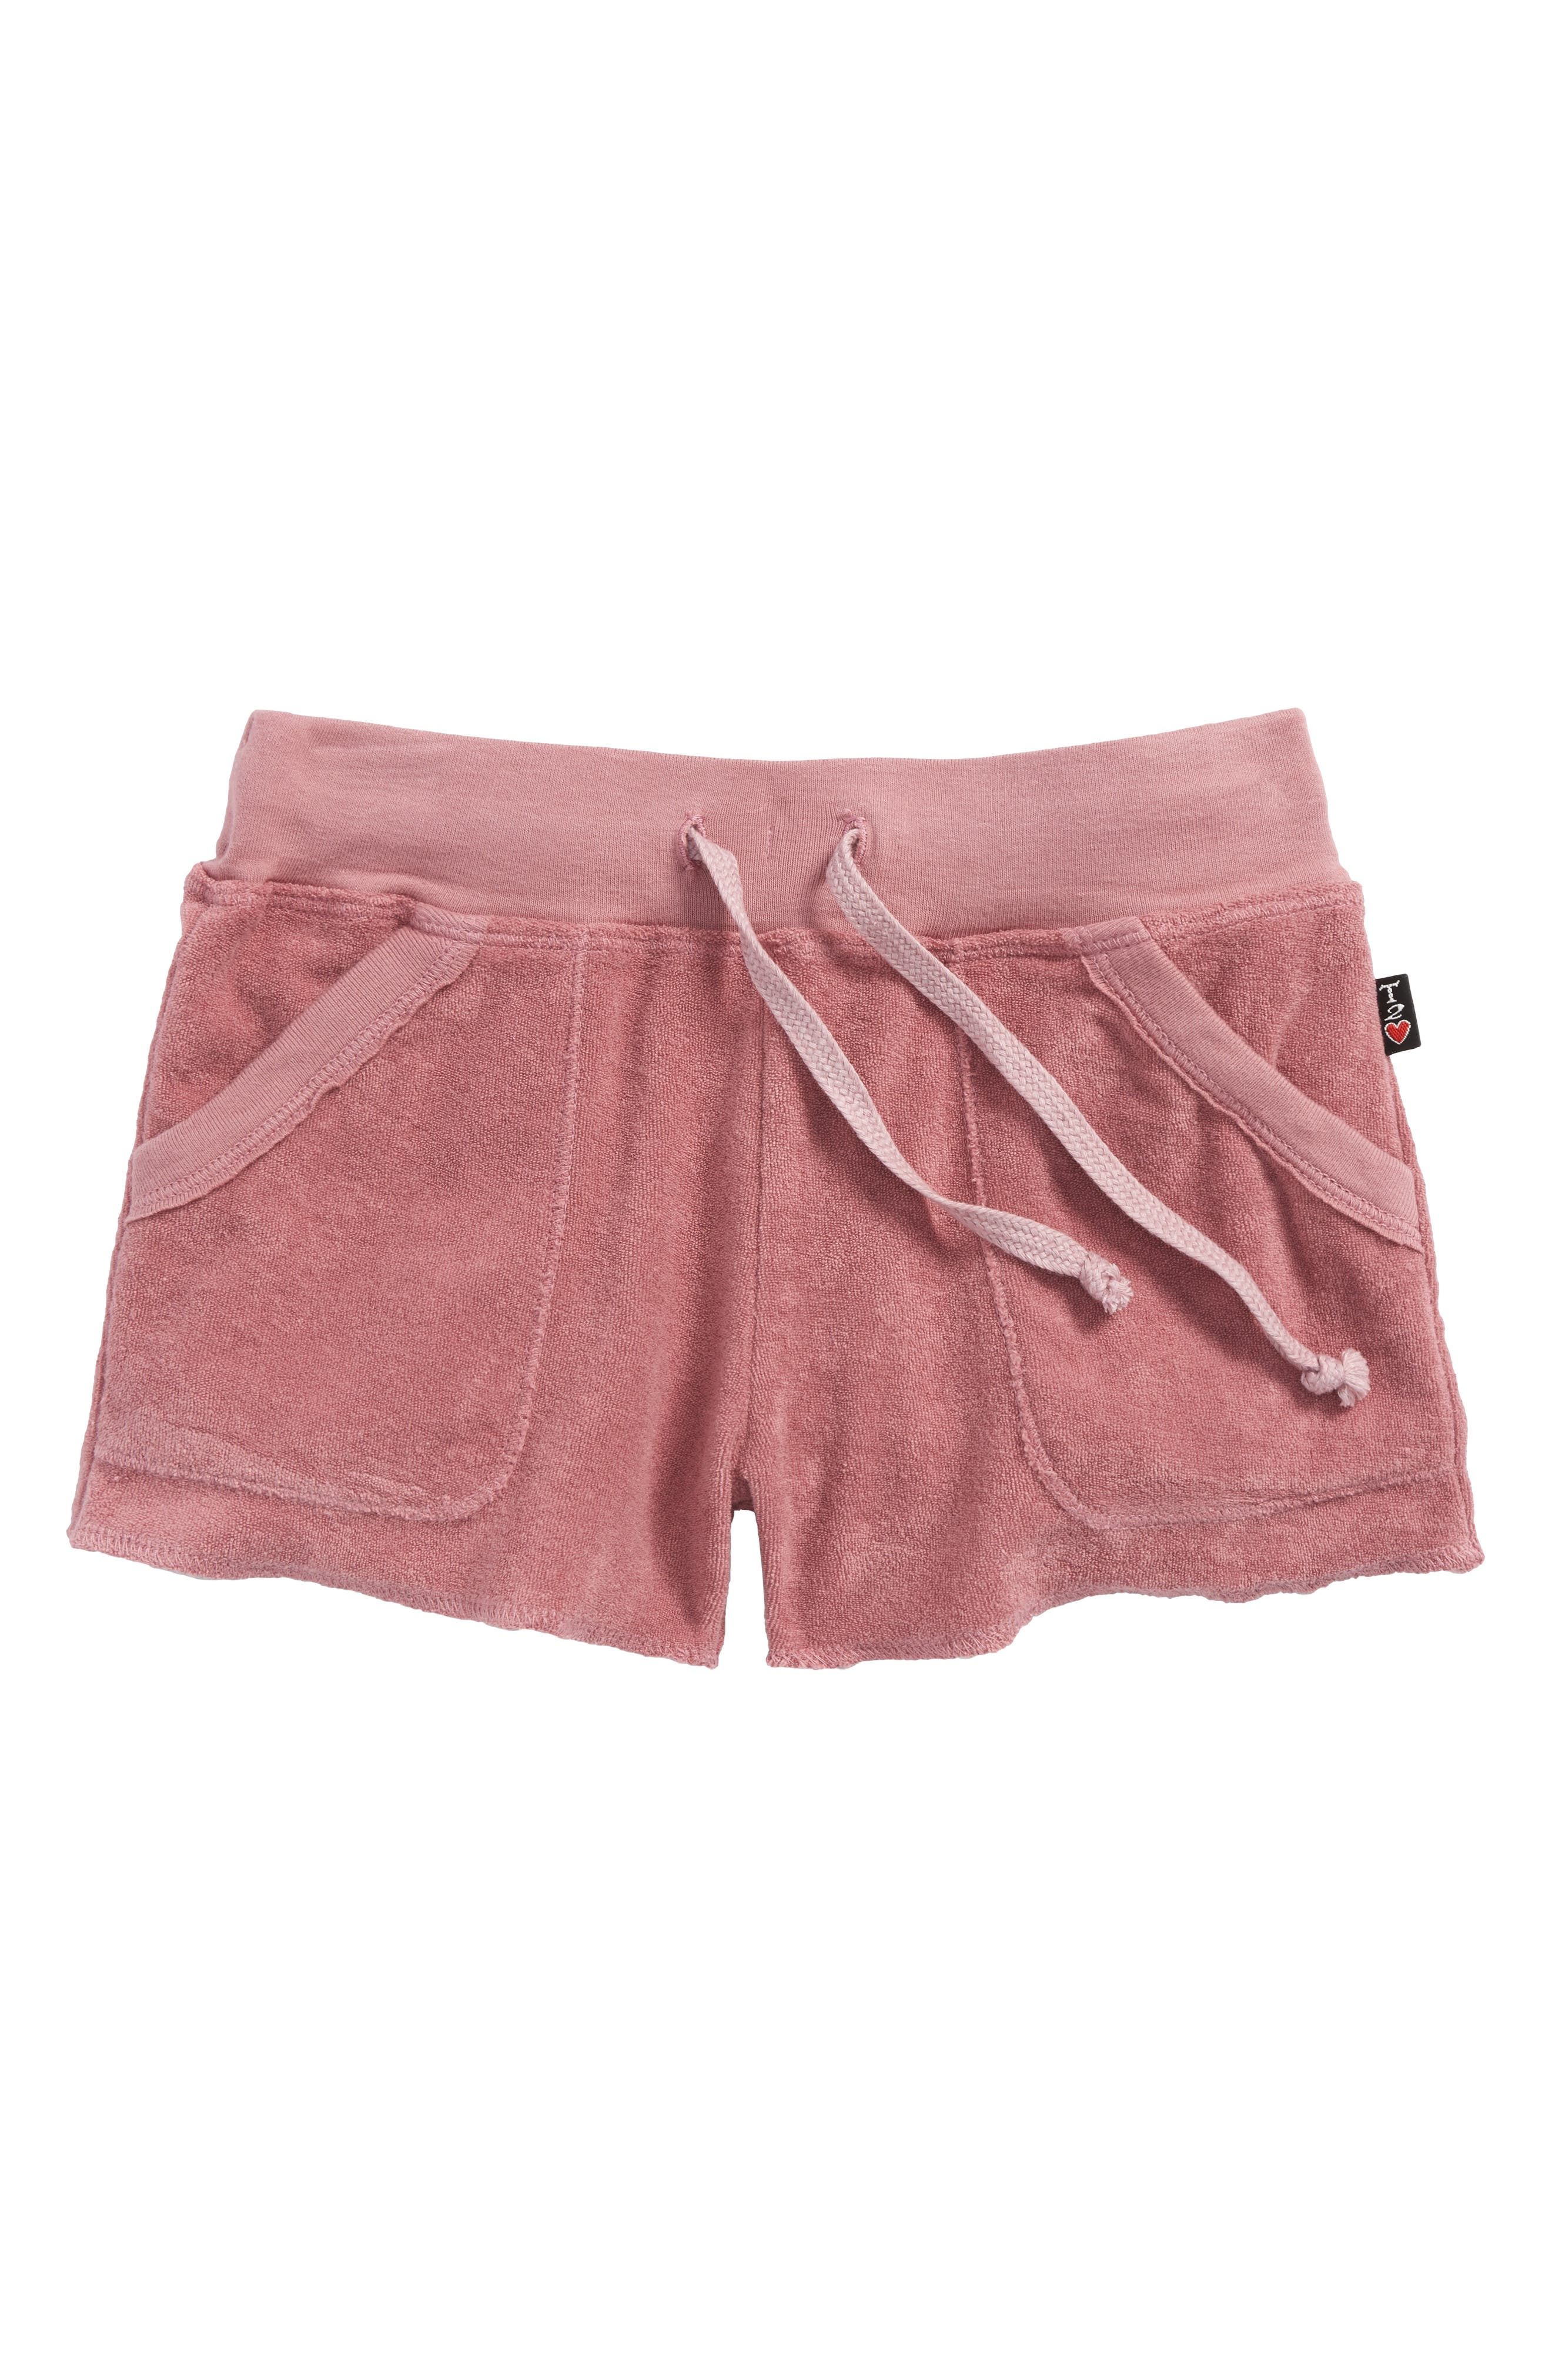 Alternate Image 1 Selected - T2Love French Terry Shorts (Big Girls)